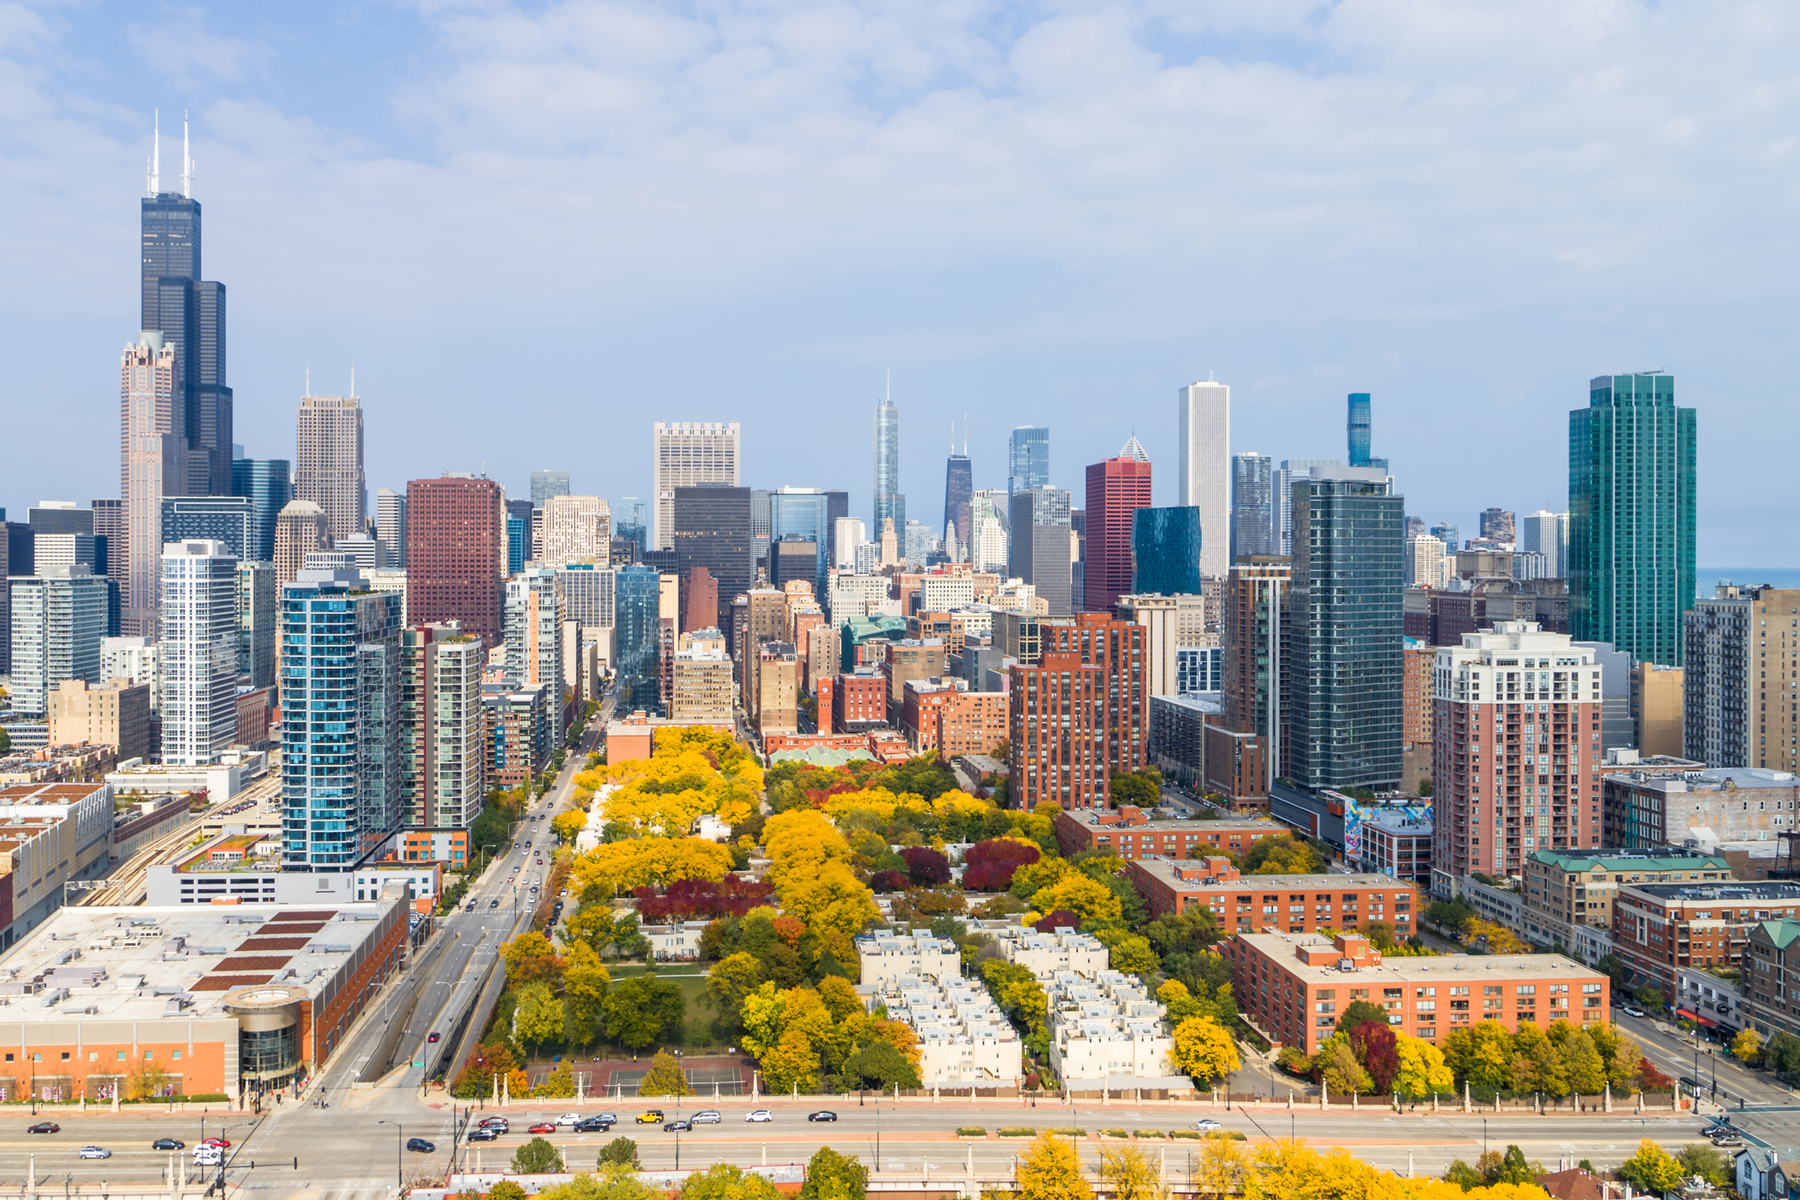 Aerial View of Chicago Cityscape and Fall Colors